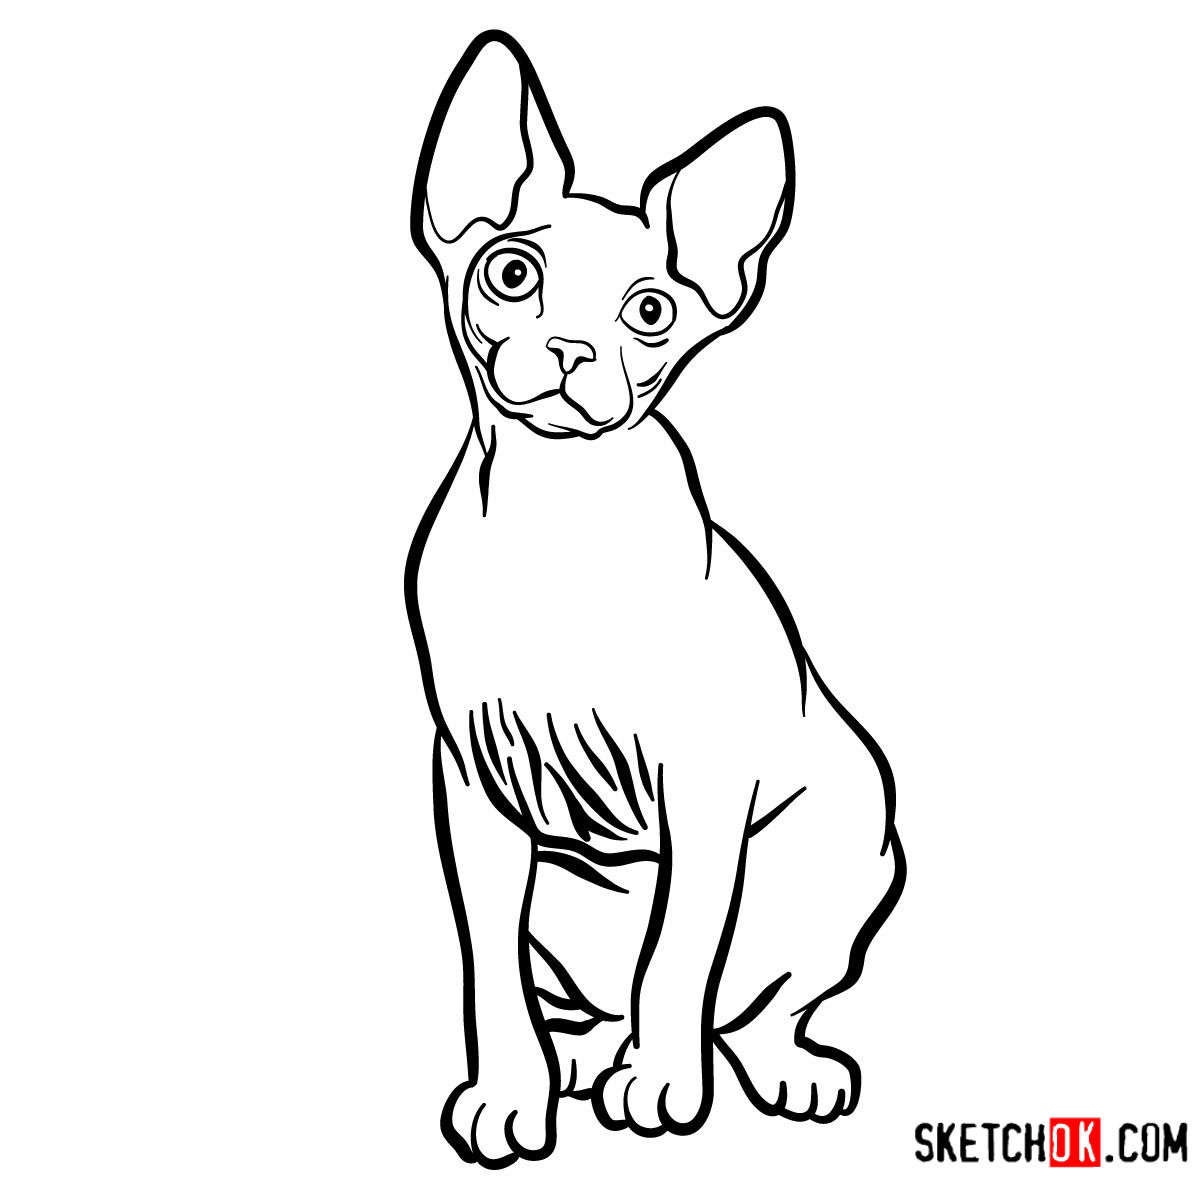 How to draw the Sphynx cat - coloring